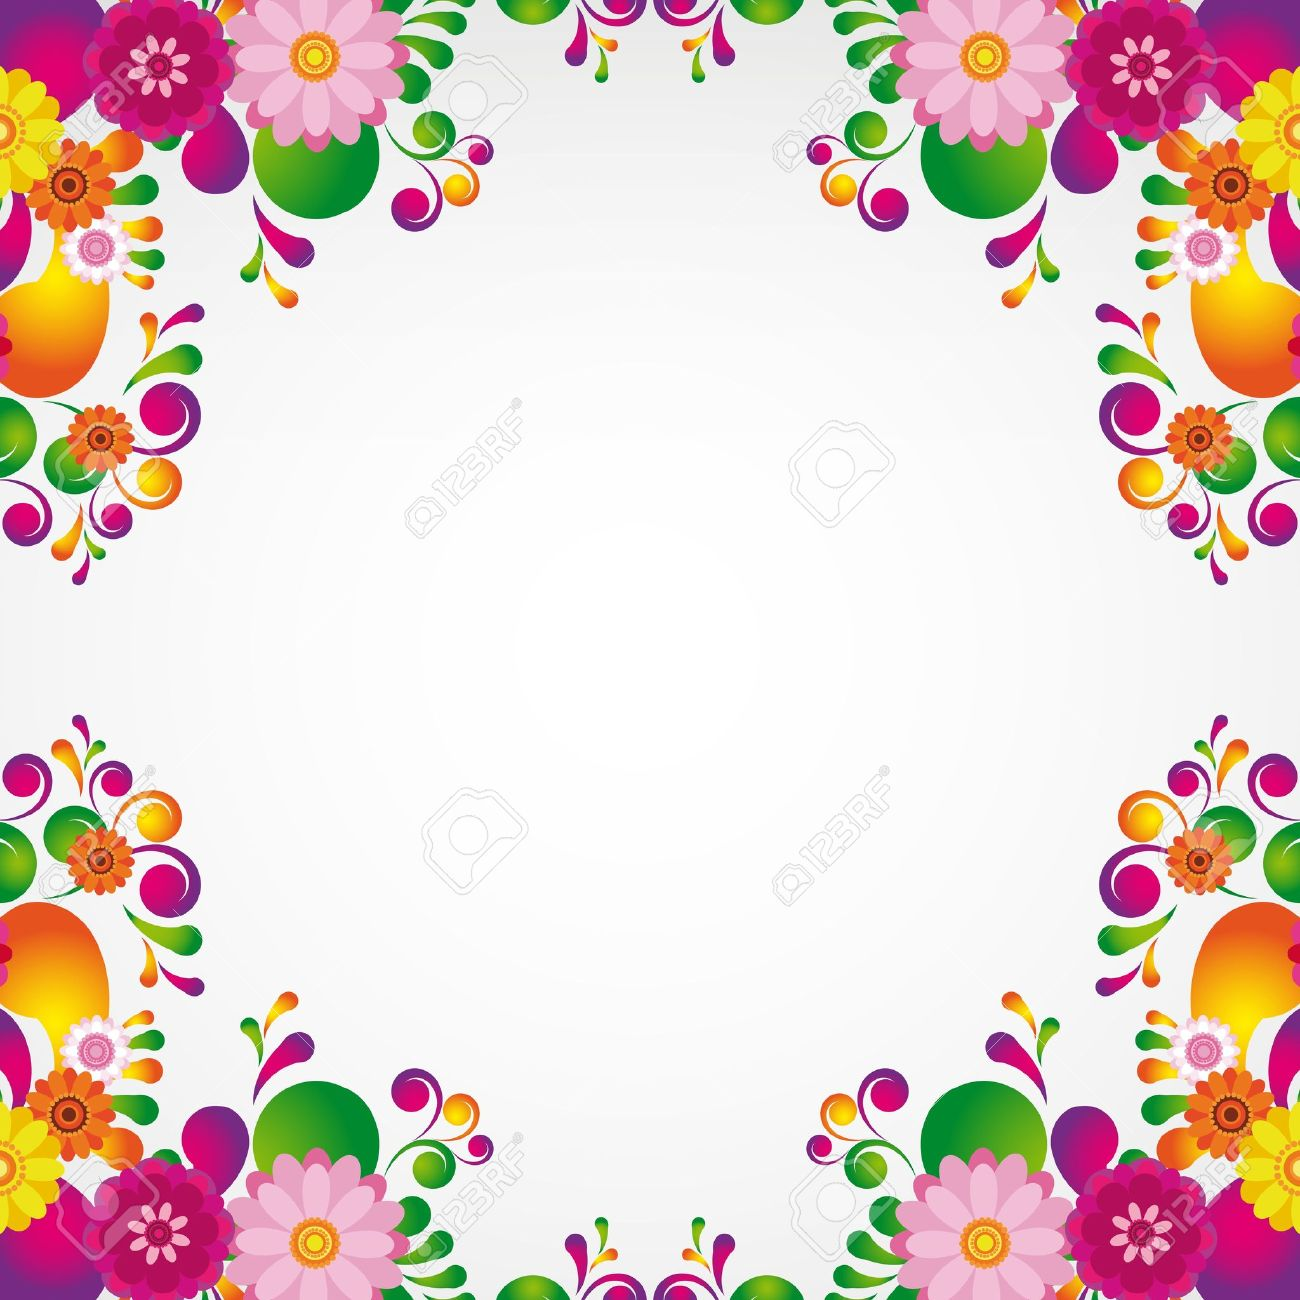 floral design background royalty free cliparts vectors and stock